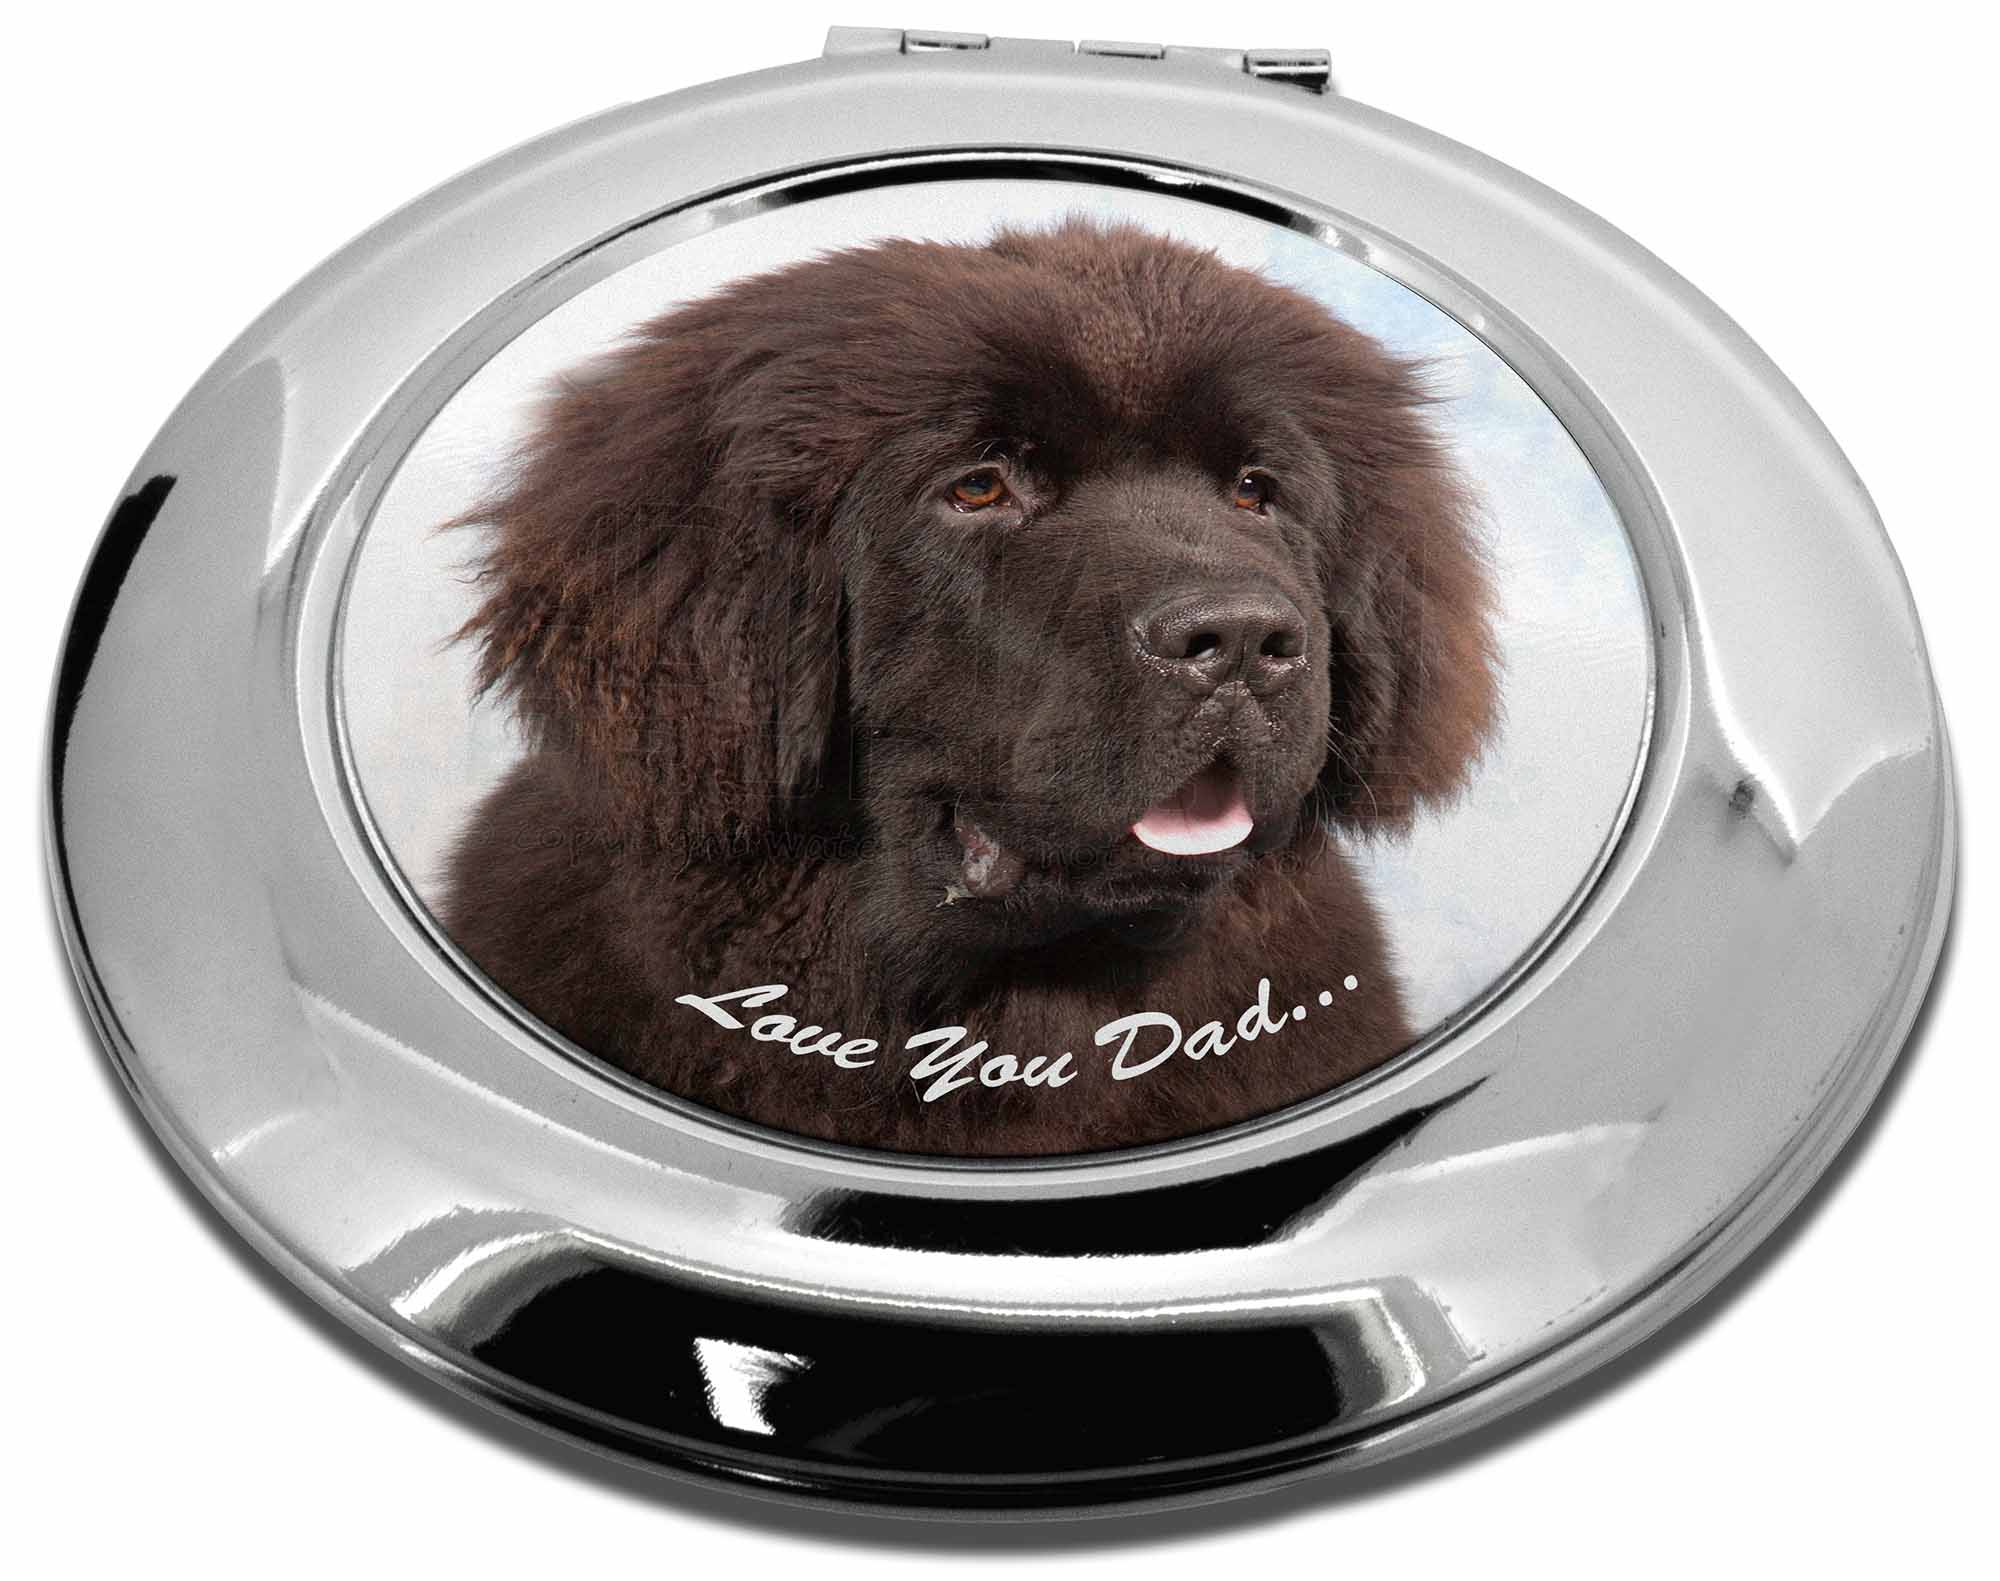 ANY MAN CAN BE A FATHER SOMEONE SPECIAL TO BE A NEWFOUNDLAND DADDY Fridge Magnet